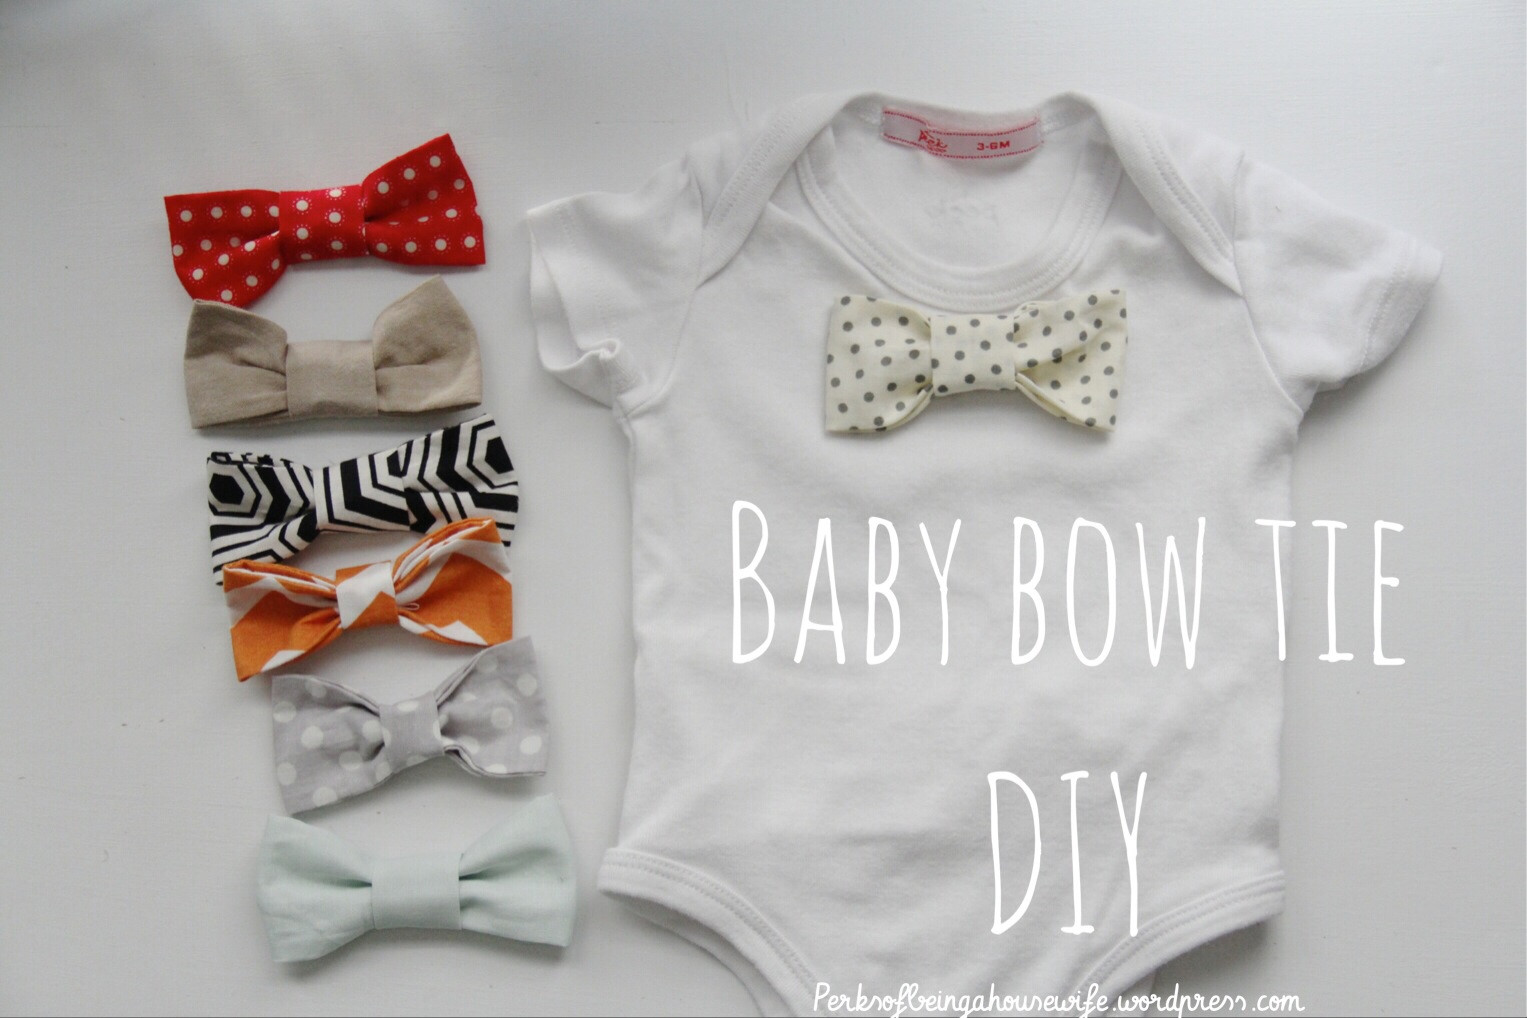 Best ideas about DIY Baby Bows . Save or Pin Baby Bow Tie DIY Now.